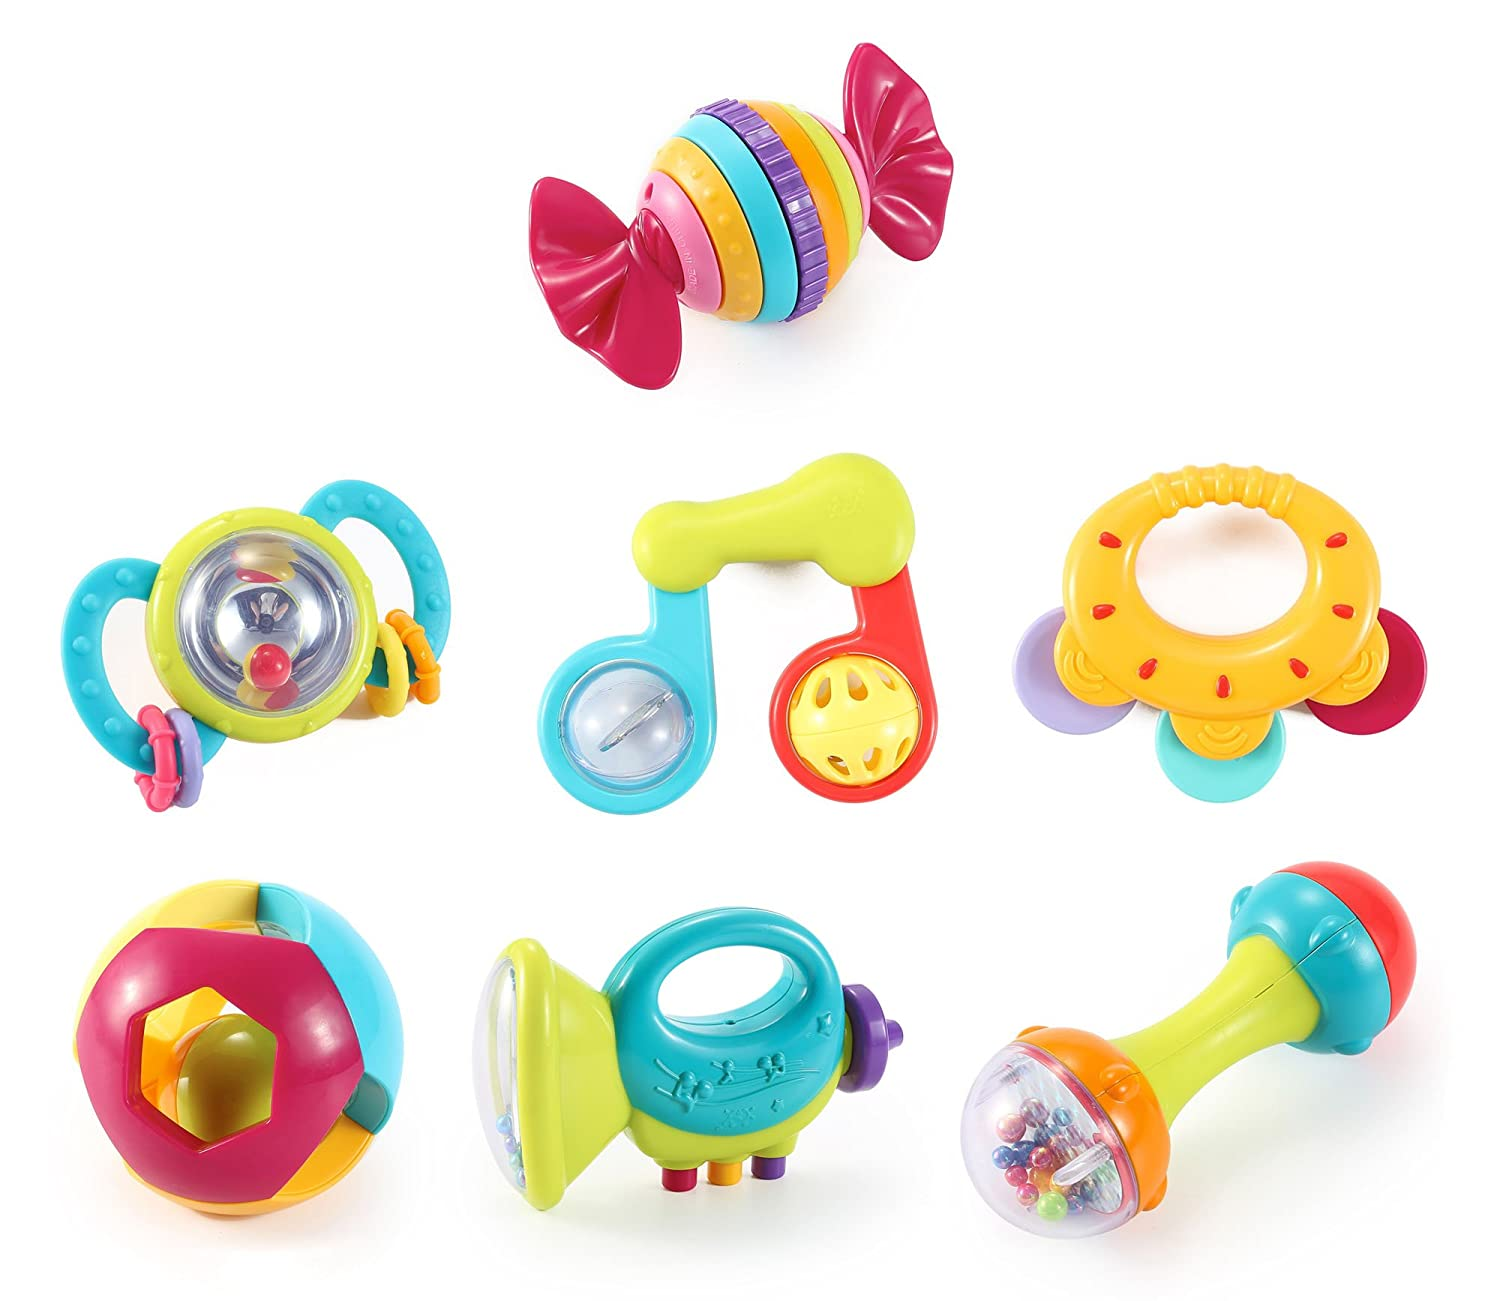 Baby Musical Toys : The best musical baby toys and gifts for your